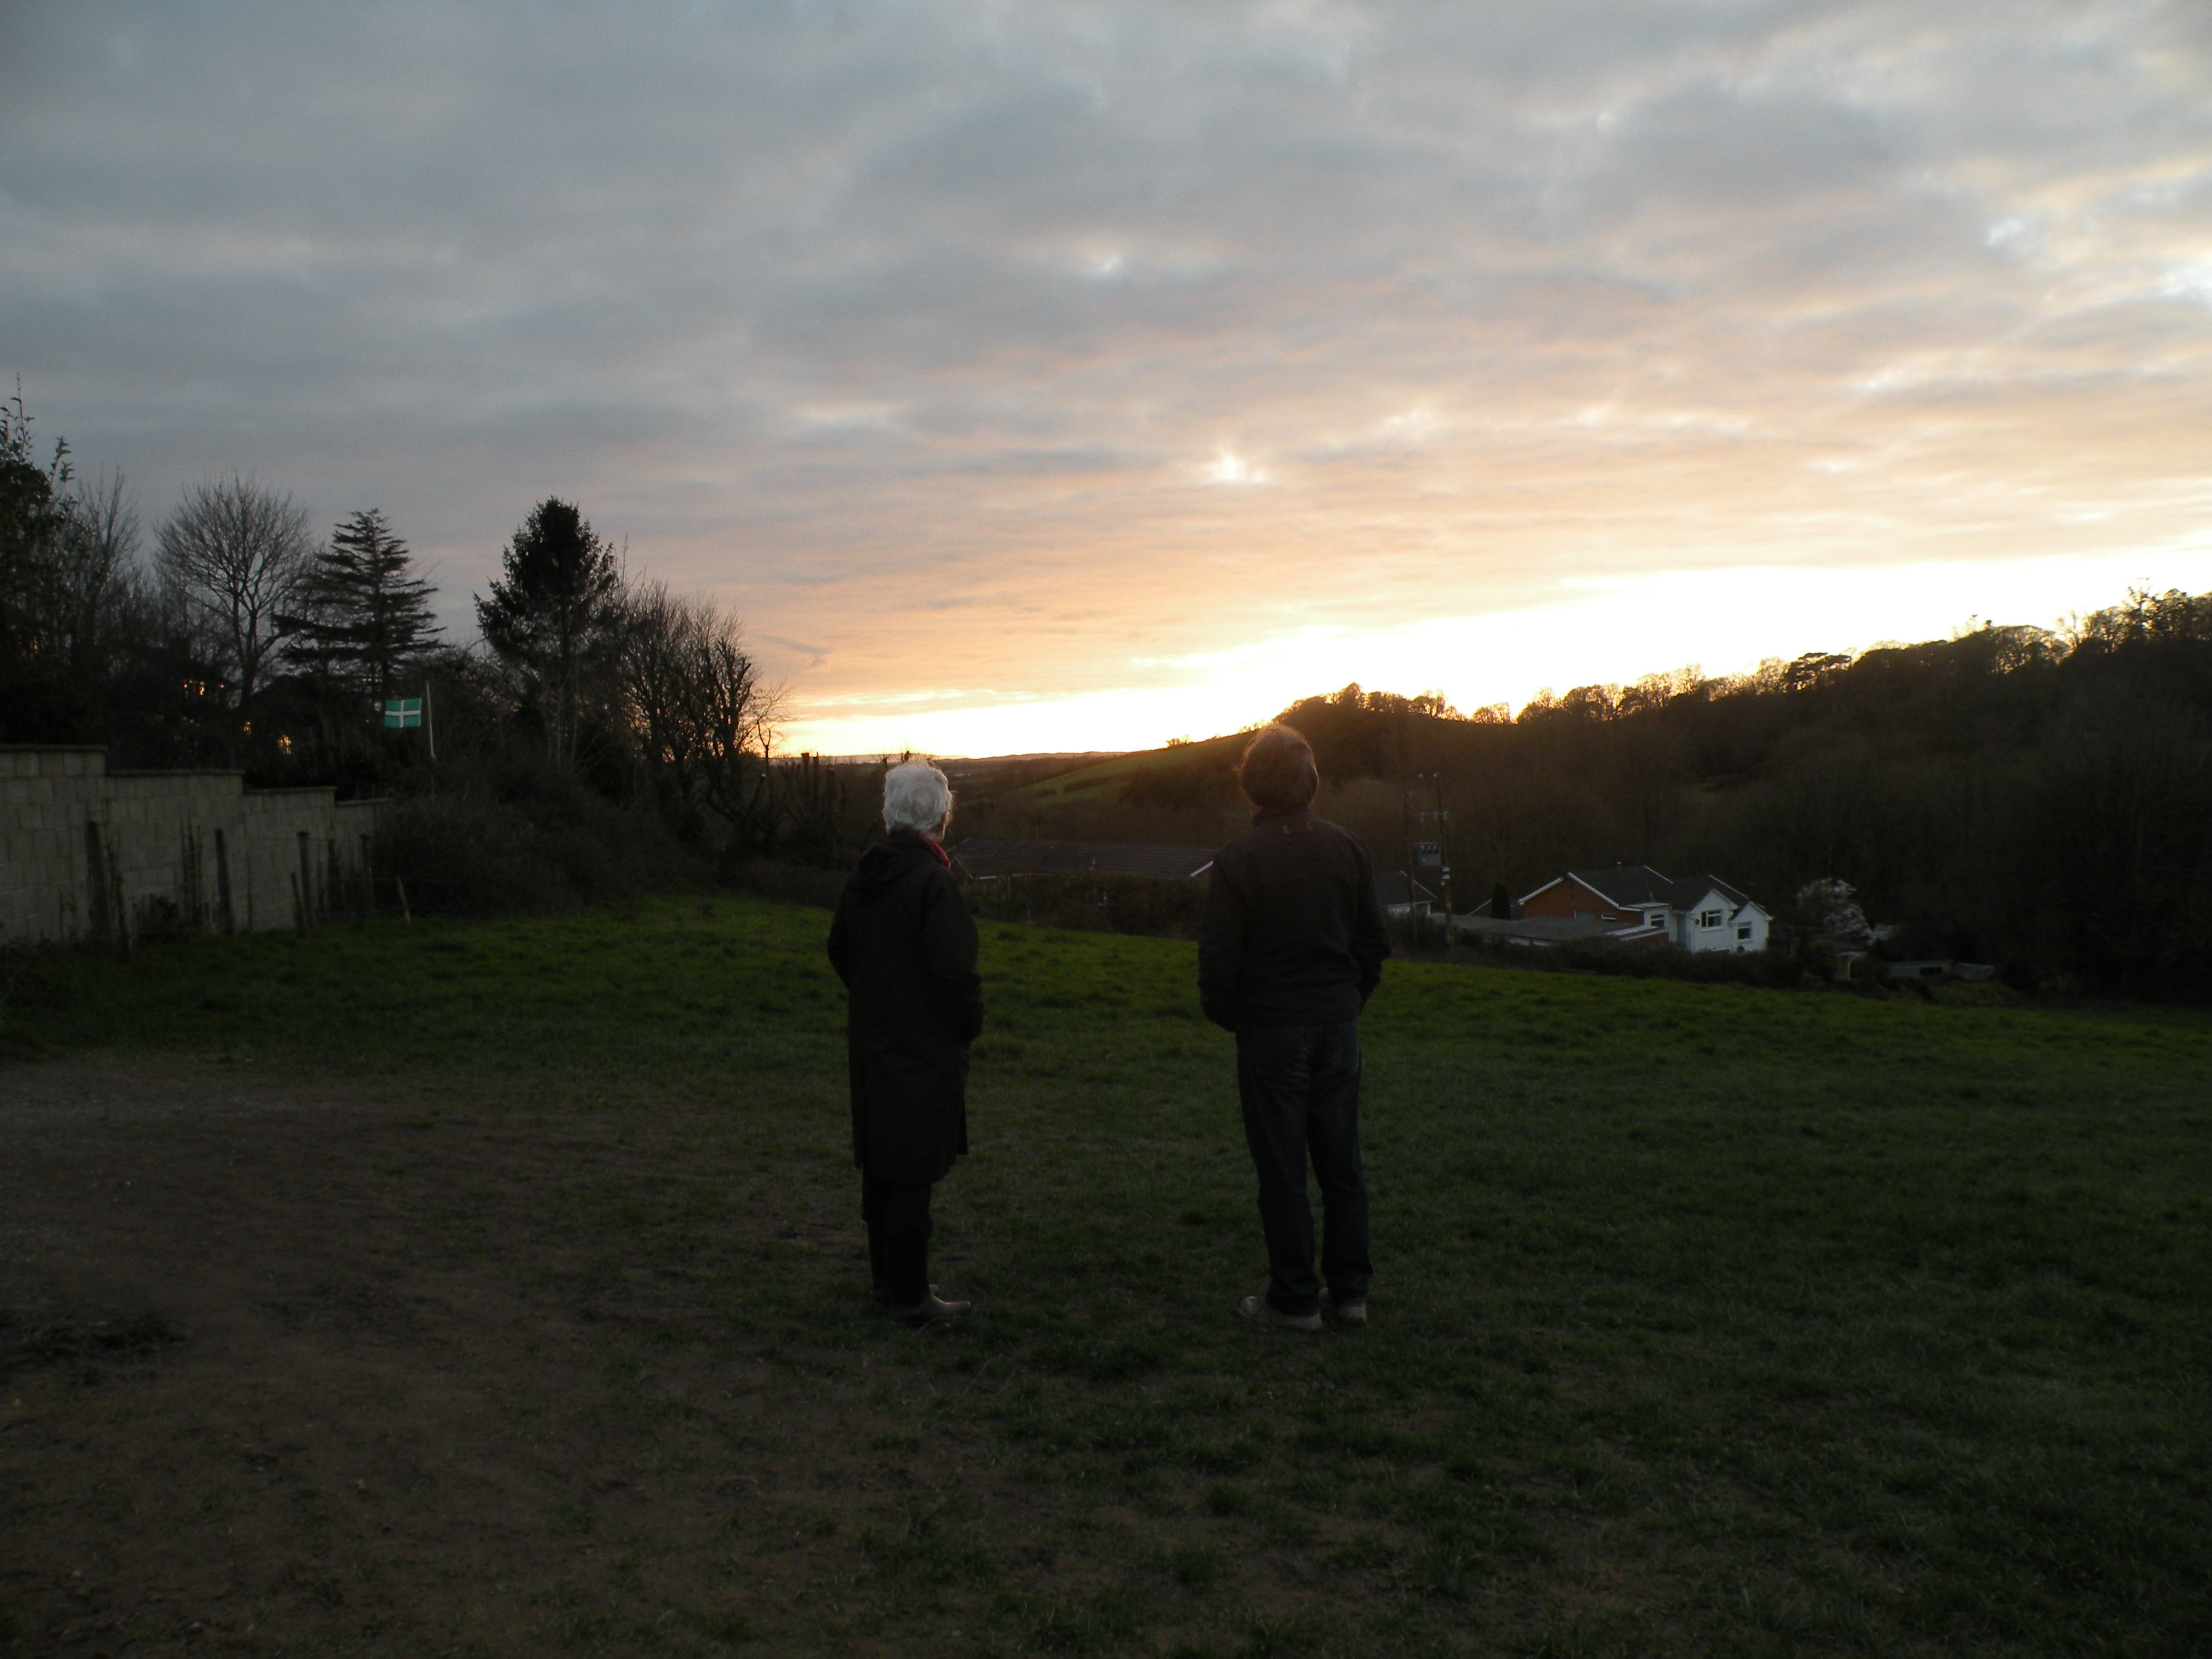 Tim and Kate watch the sun setting